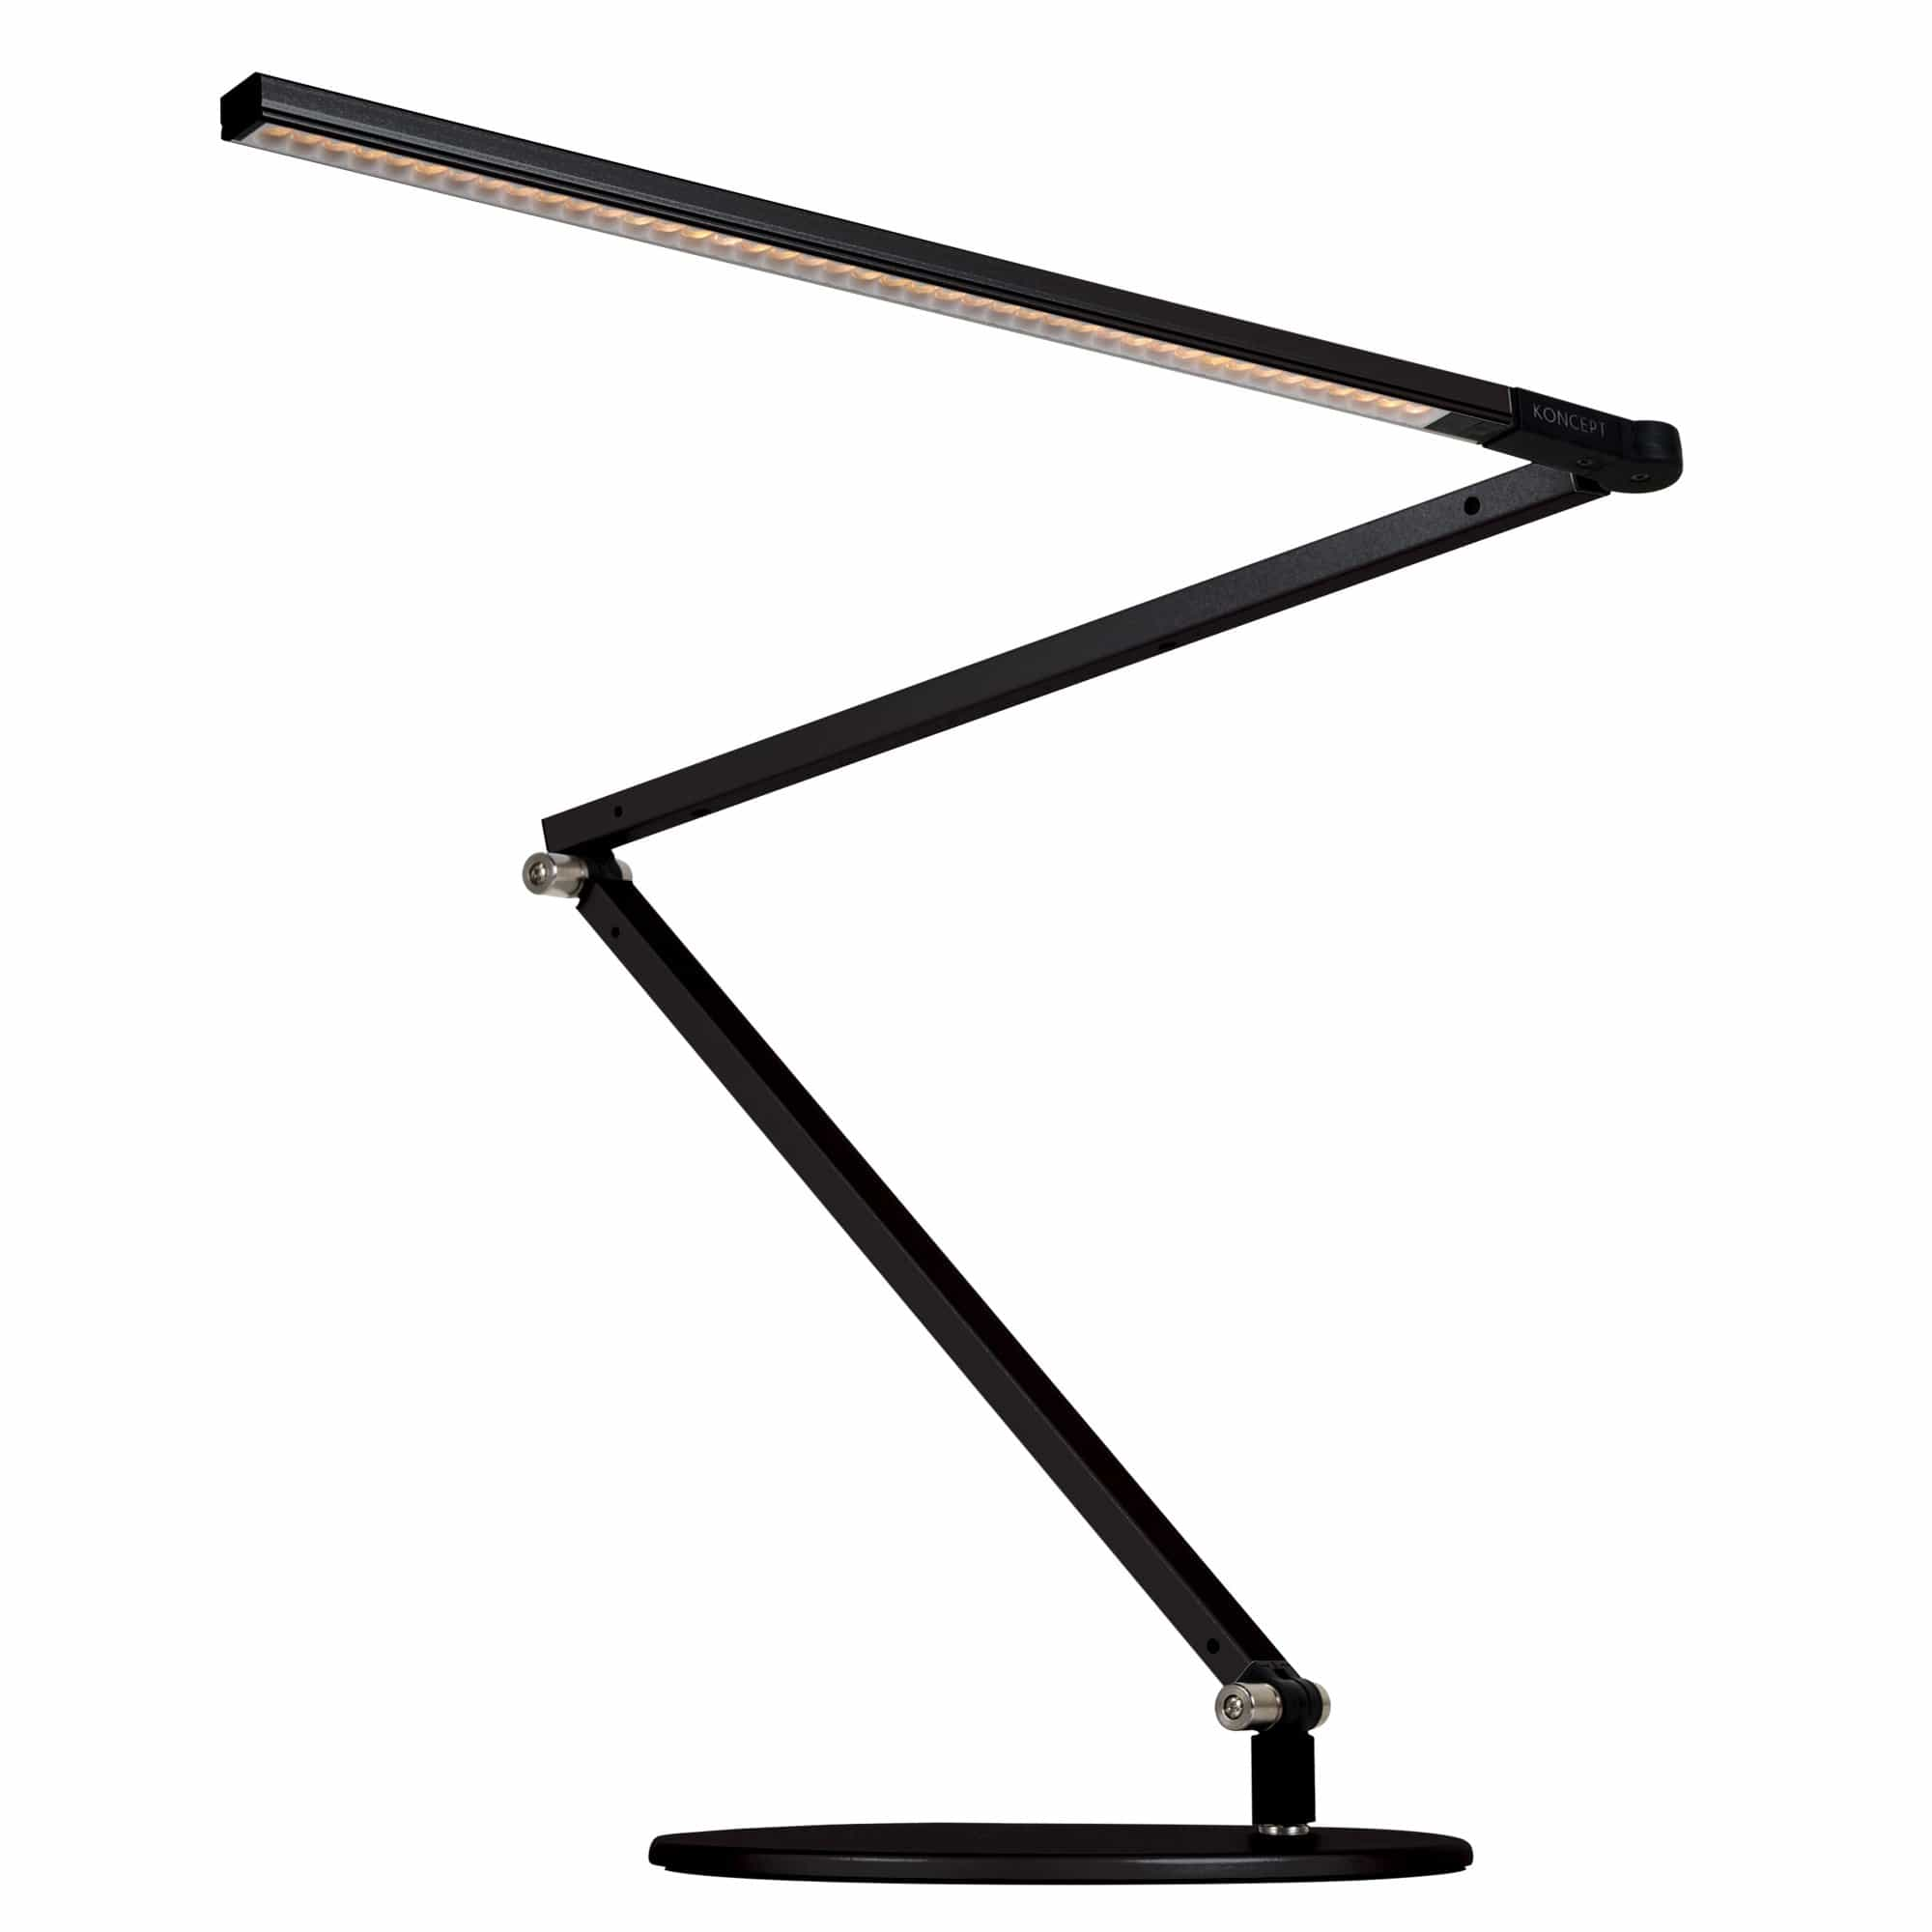 Koncept Table Metallic Black / Warm Diffused / Desk base (standard) Z Bar Desk Lamp